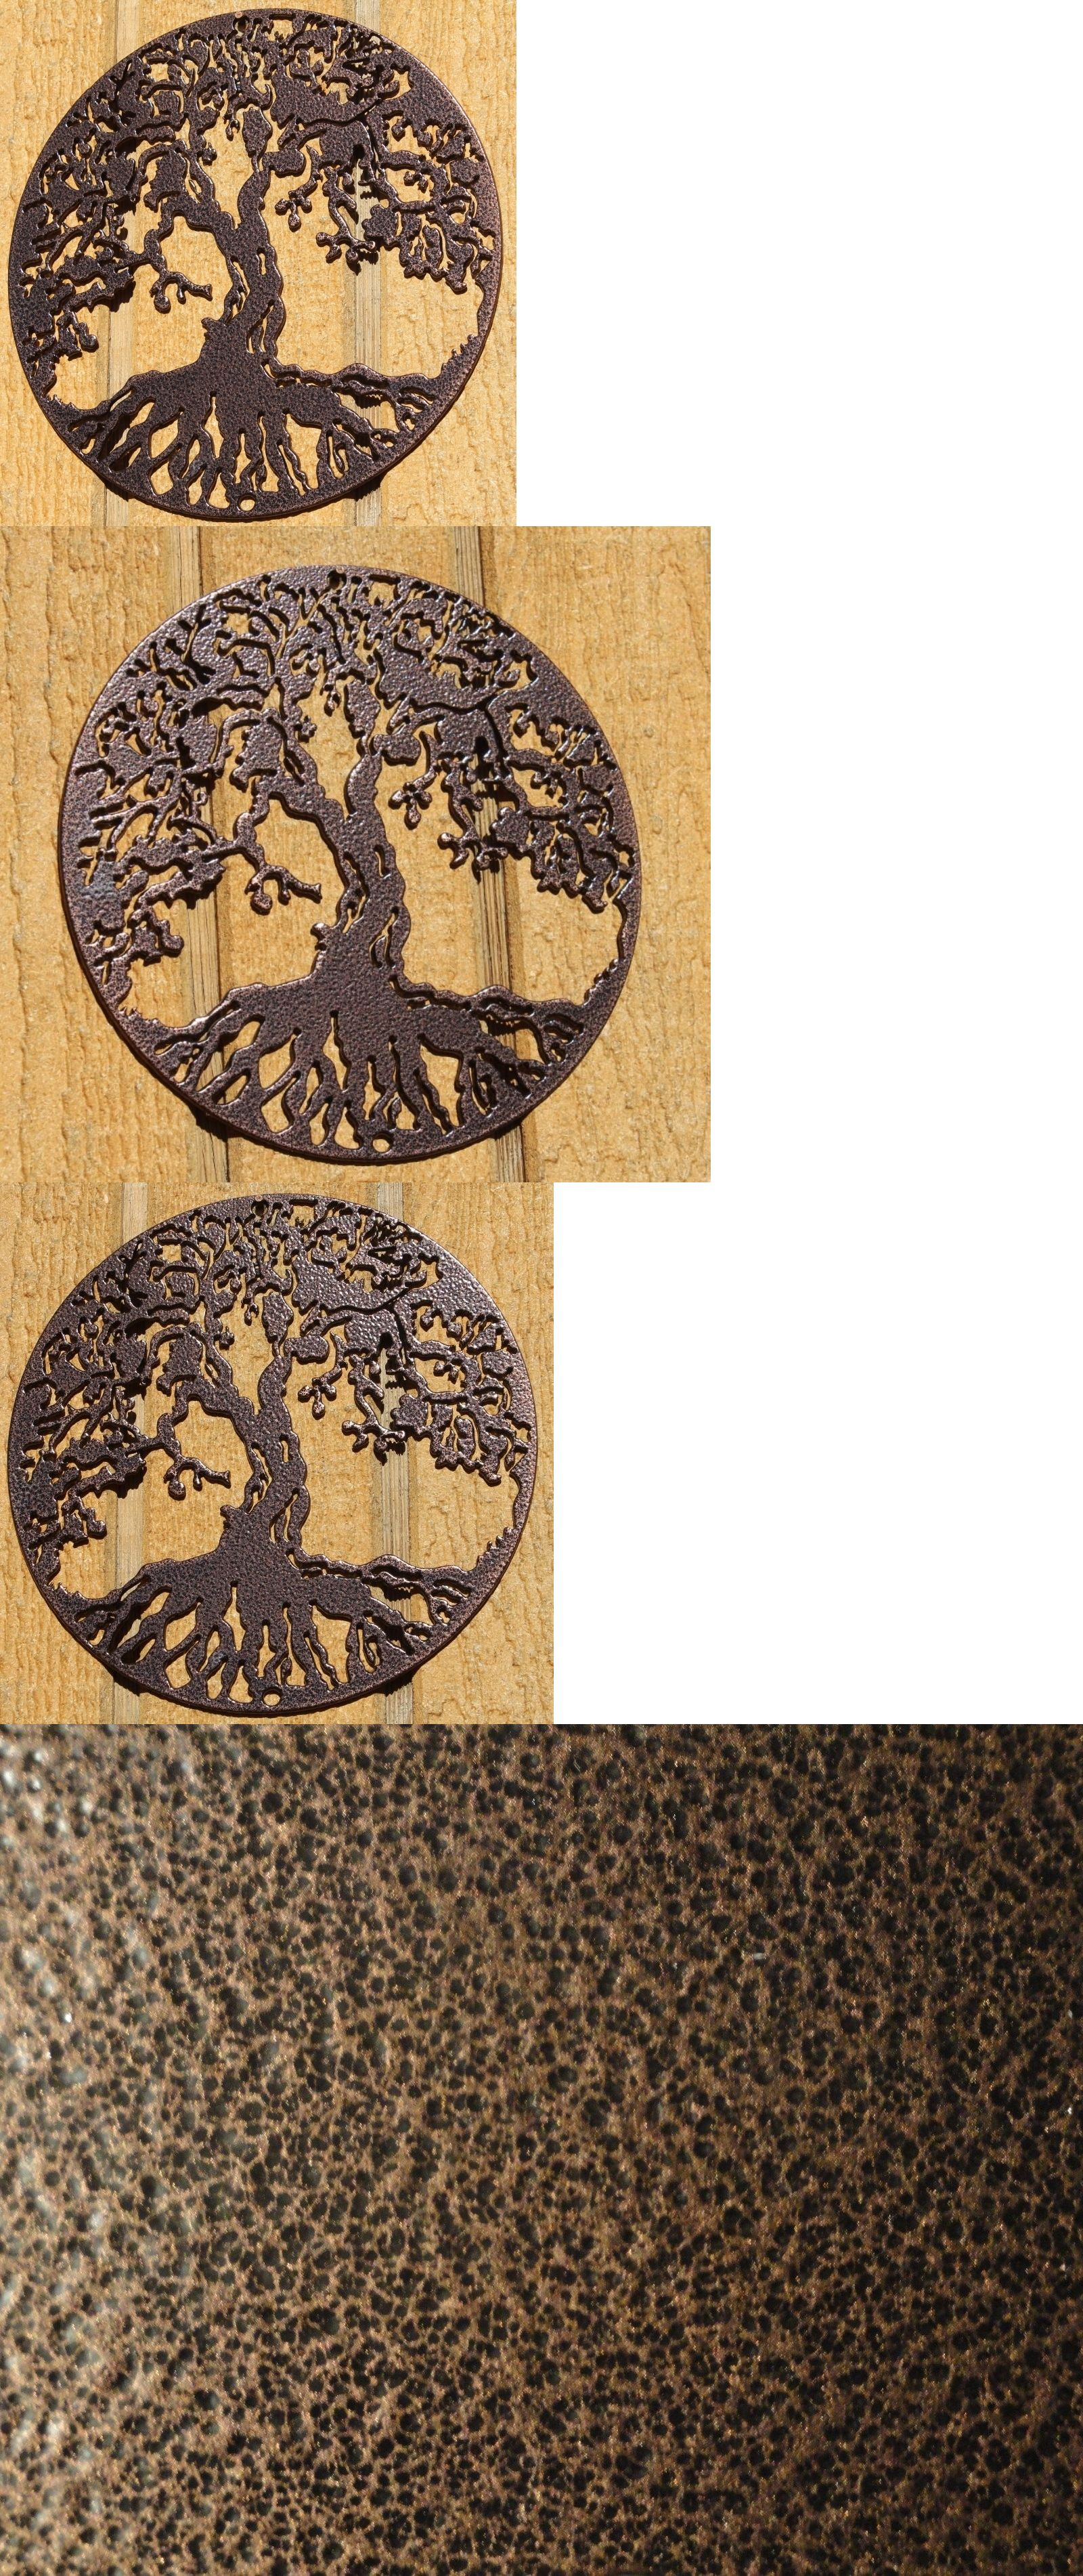 Where Can I Buy Metal Wall Art Wall Sculptures 166729 Tree Of Life Metal Wall Art Home Decor